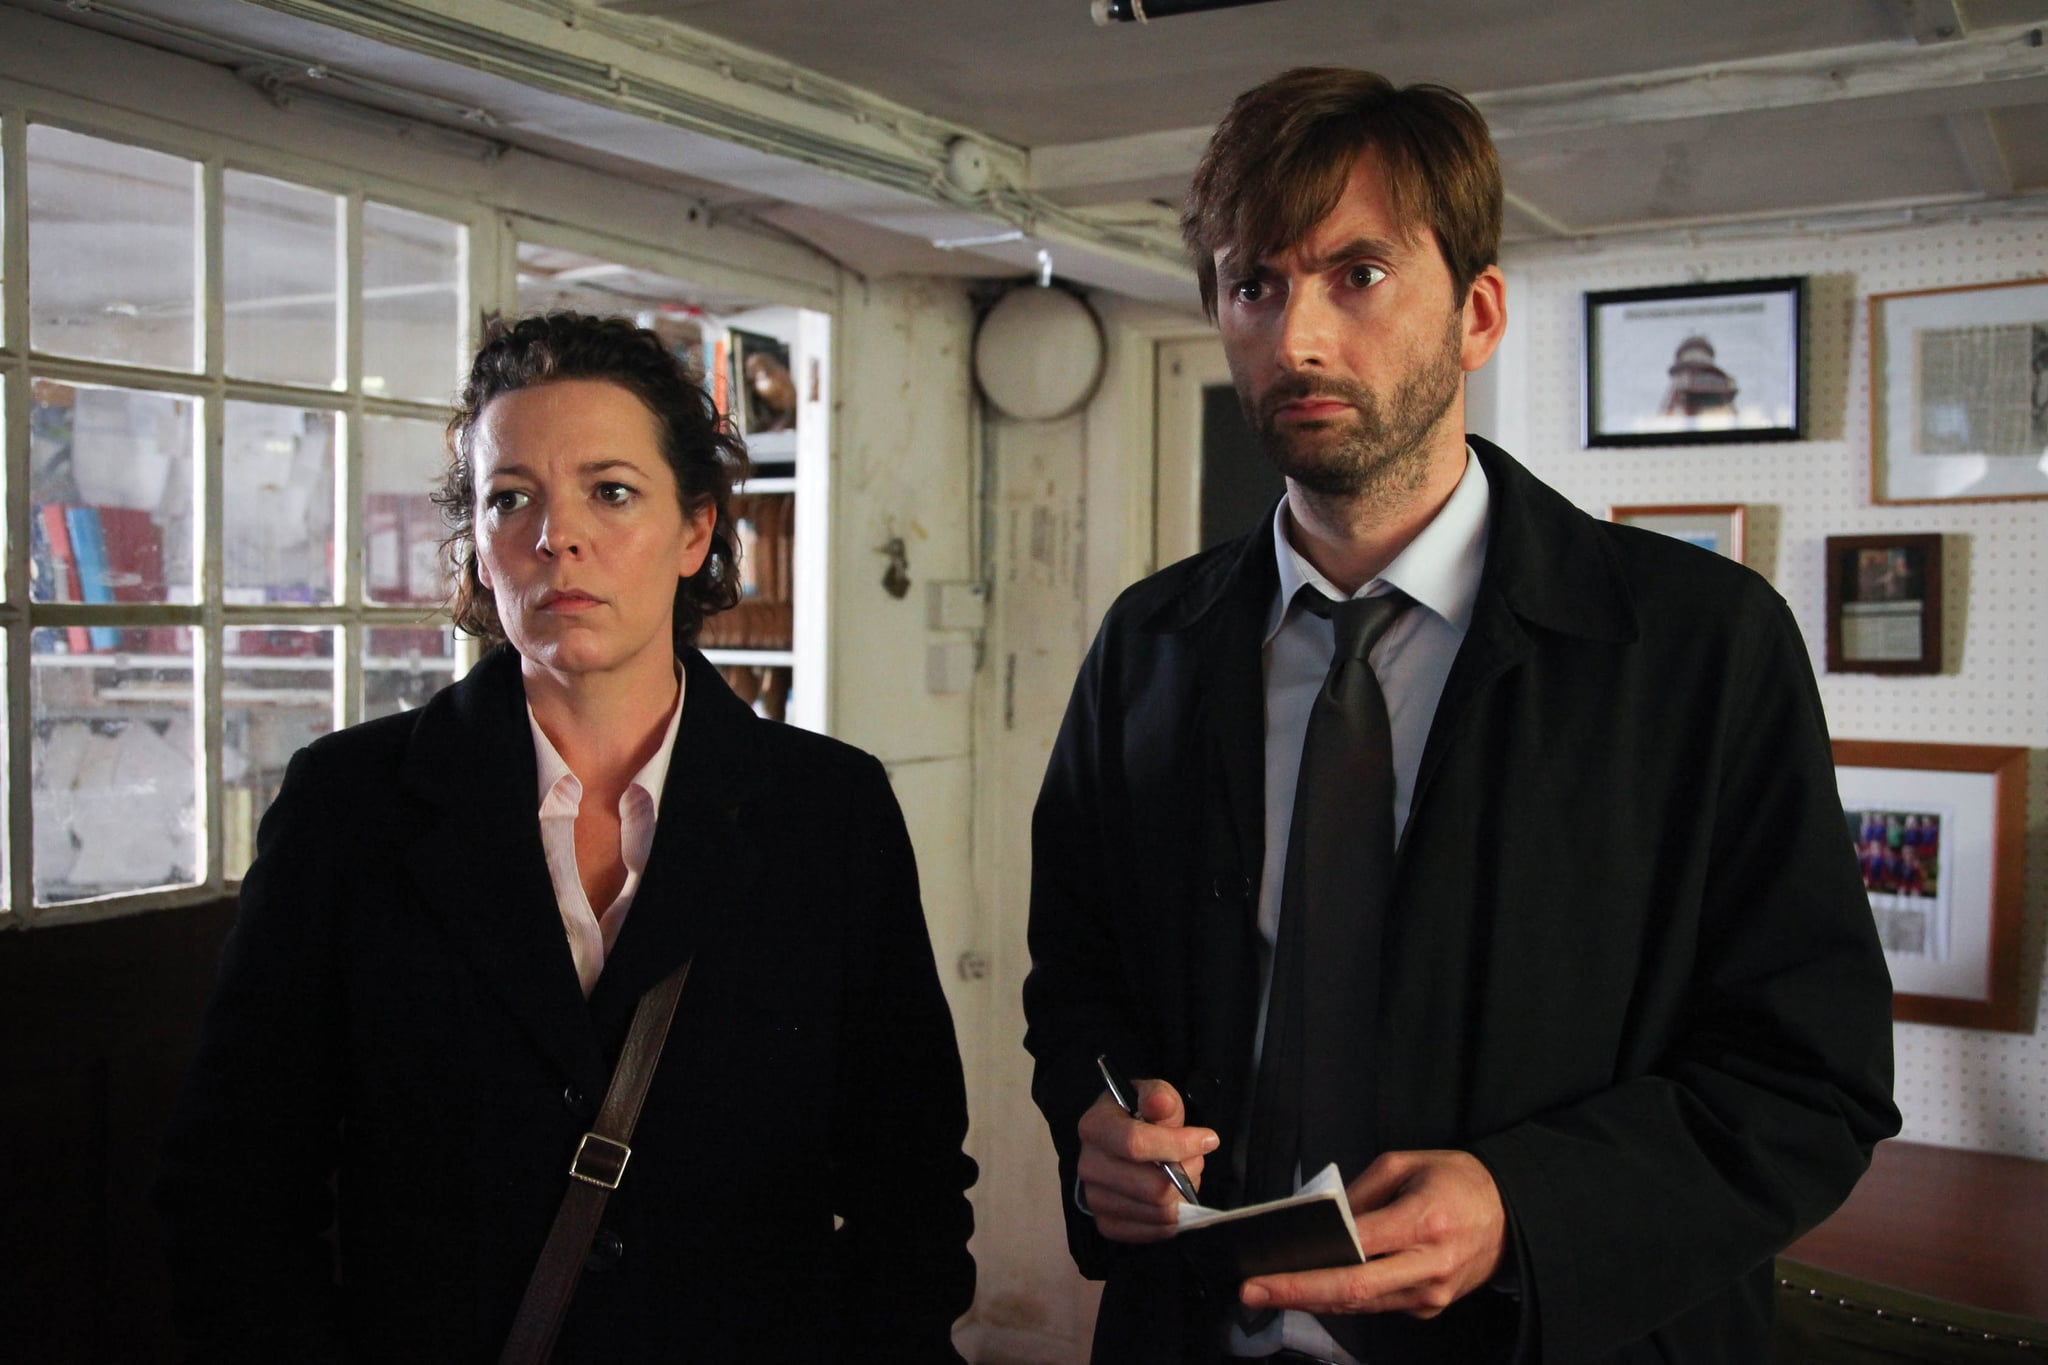 BROADCHURCH, (from left): Olivia Colman, David Tennant, (Season 1, ep. 106, aired April 8, 2013 in UK/aired Sept. 11, 2013 in U.S.). photo: Patrick Redmond /  ITV/BBC America / Courtesy: Everett Collection